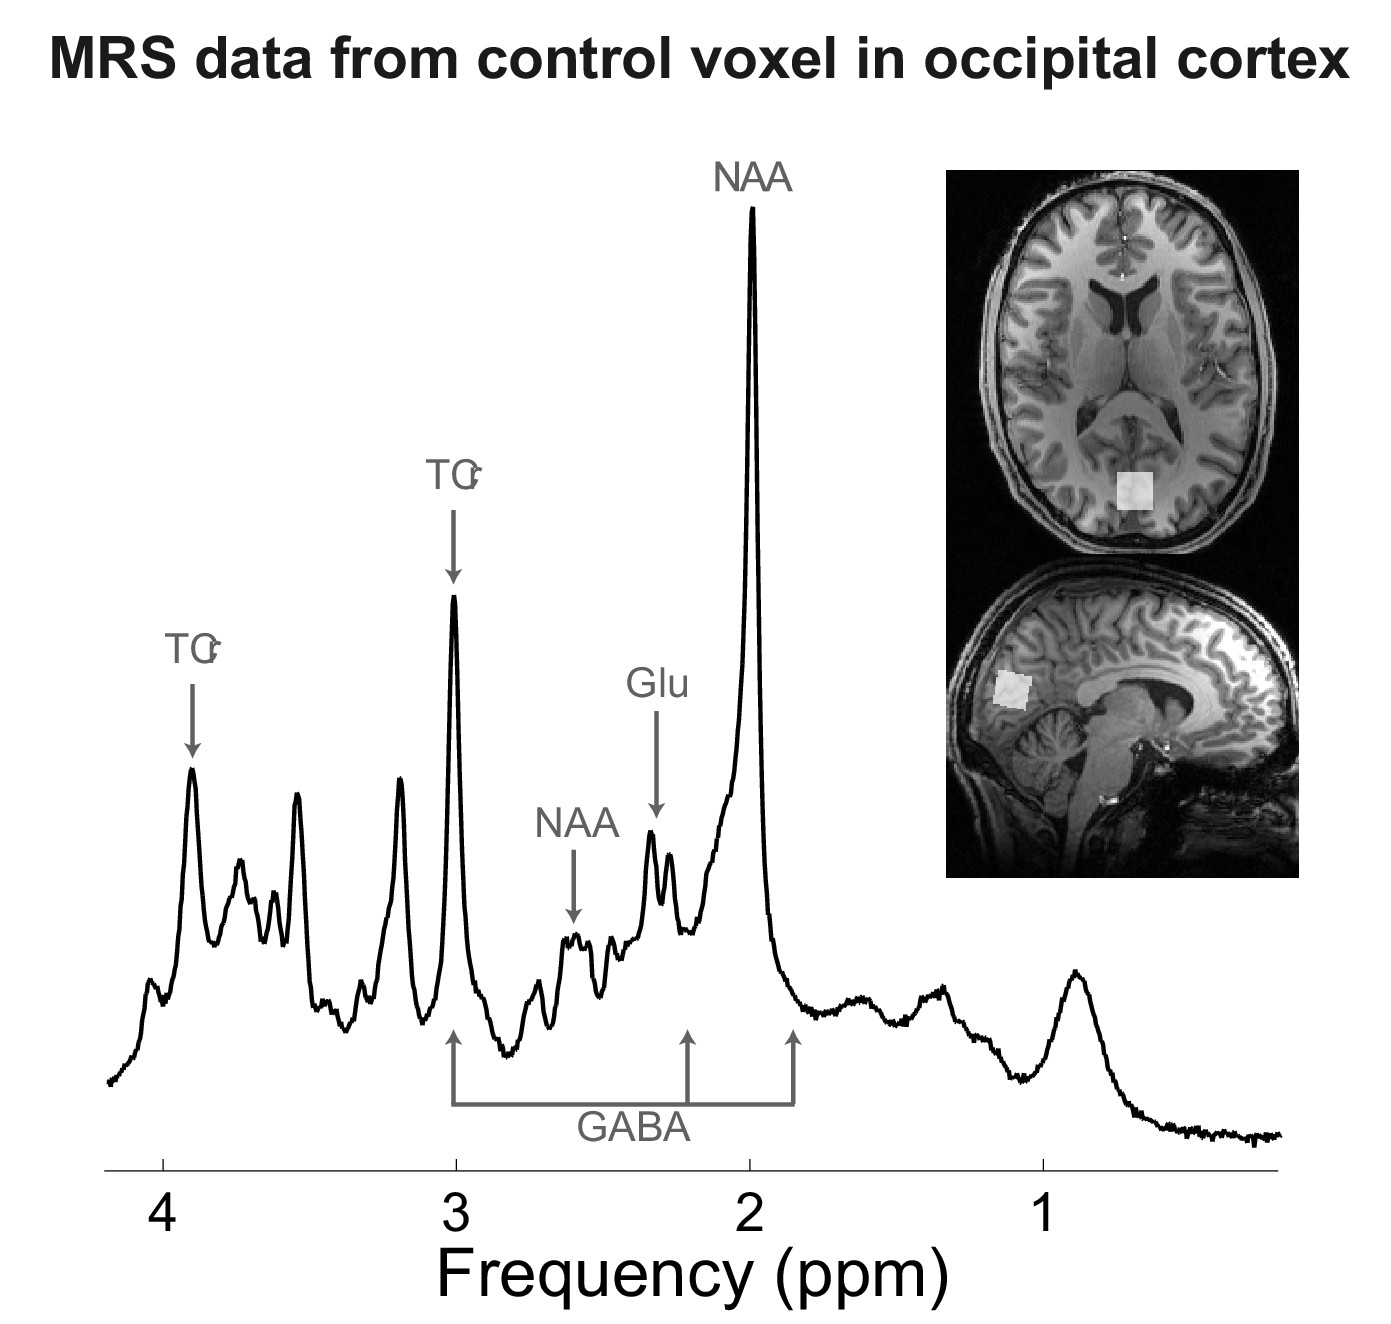 Induced Sensorimotor Cortex Plasticity Remediates Chronic Treatment Appendix D Electrical Guide Legend Oneline Diagrams Cont Mrs Data From Occipital Voxel In Experiment 7